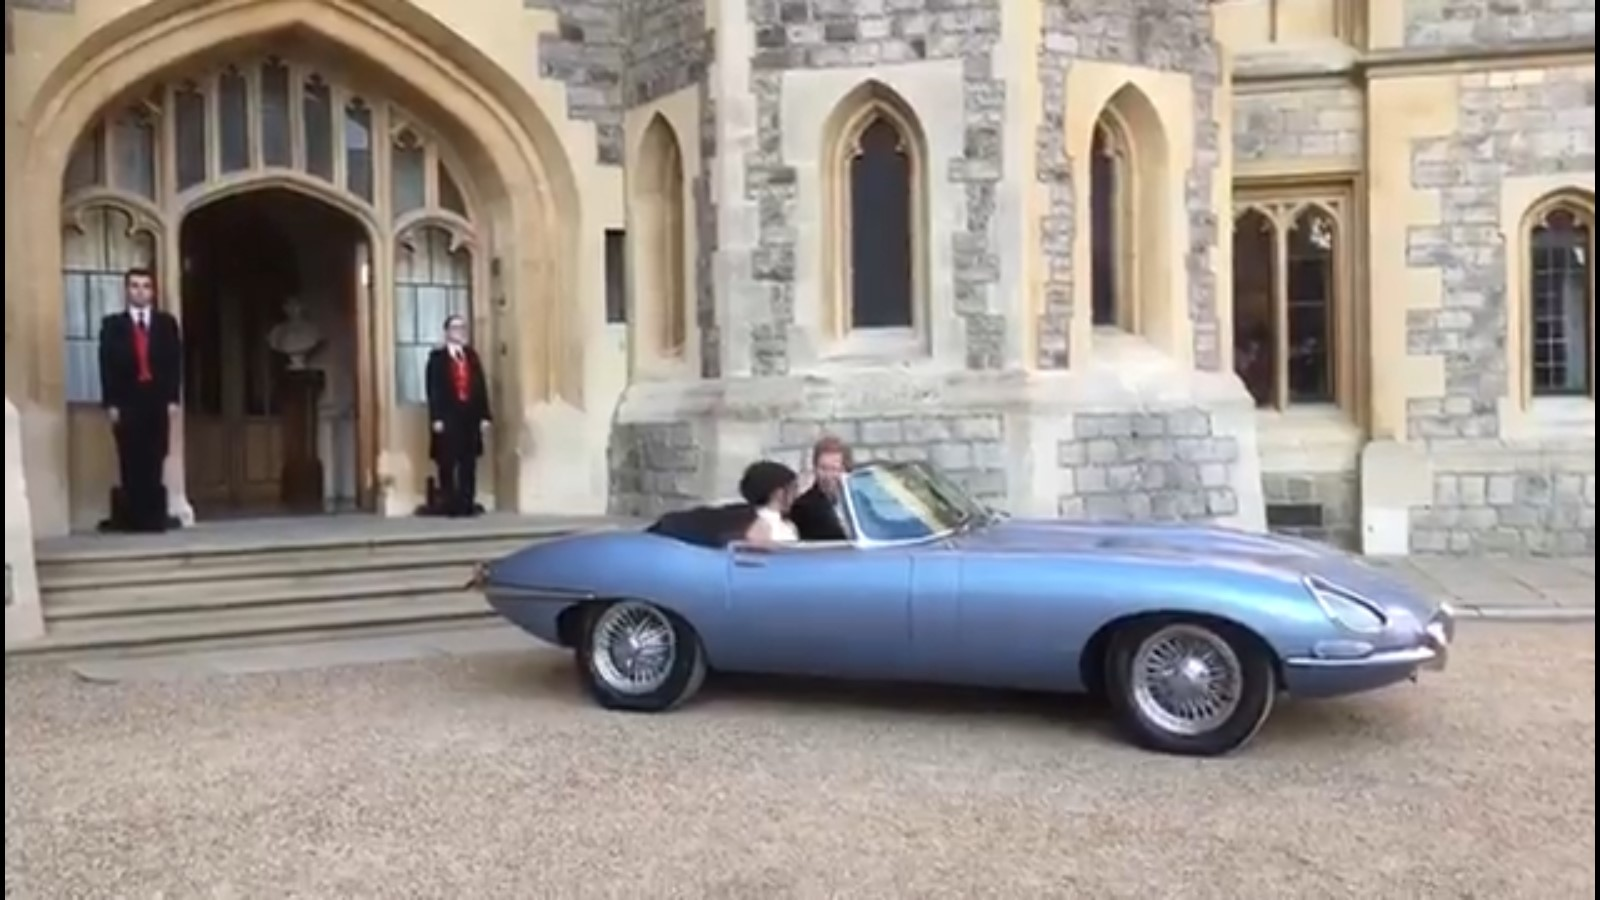 The Royal Couple Left Windsor Castle in an Electric Jag